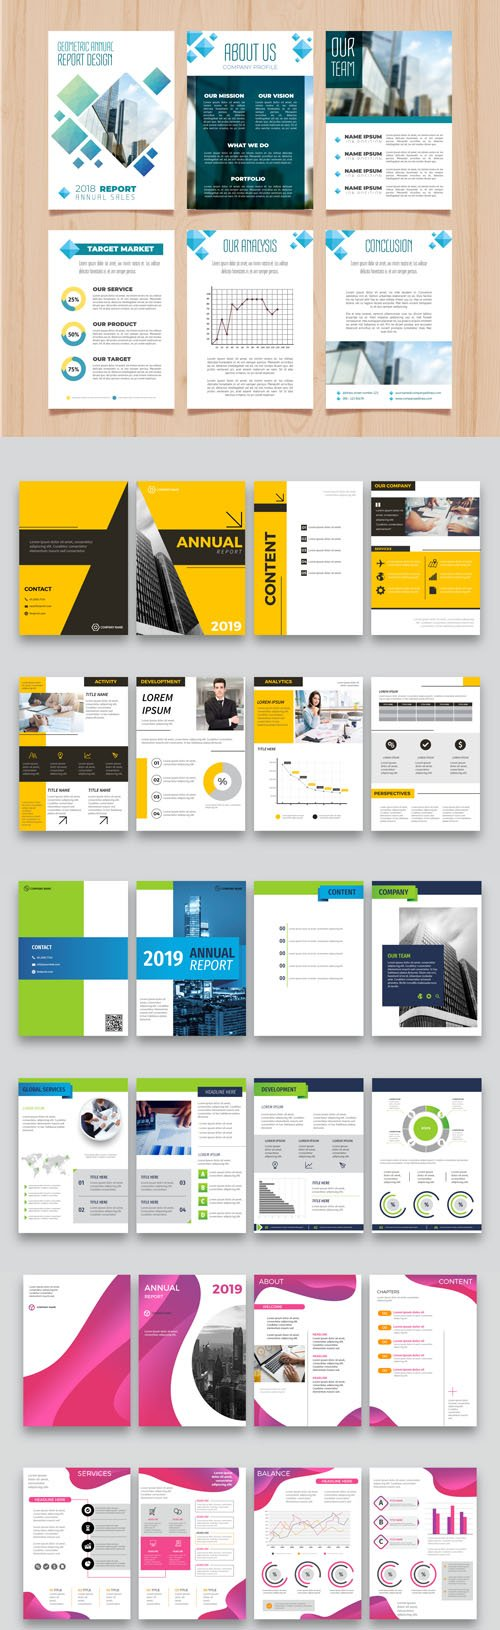 Annual Report Vector Templates Collection